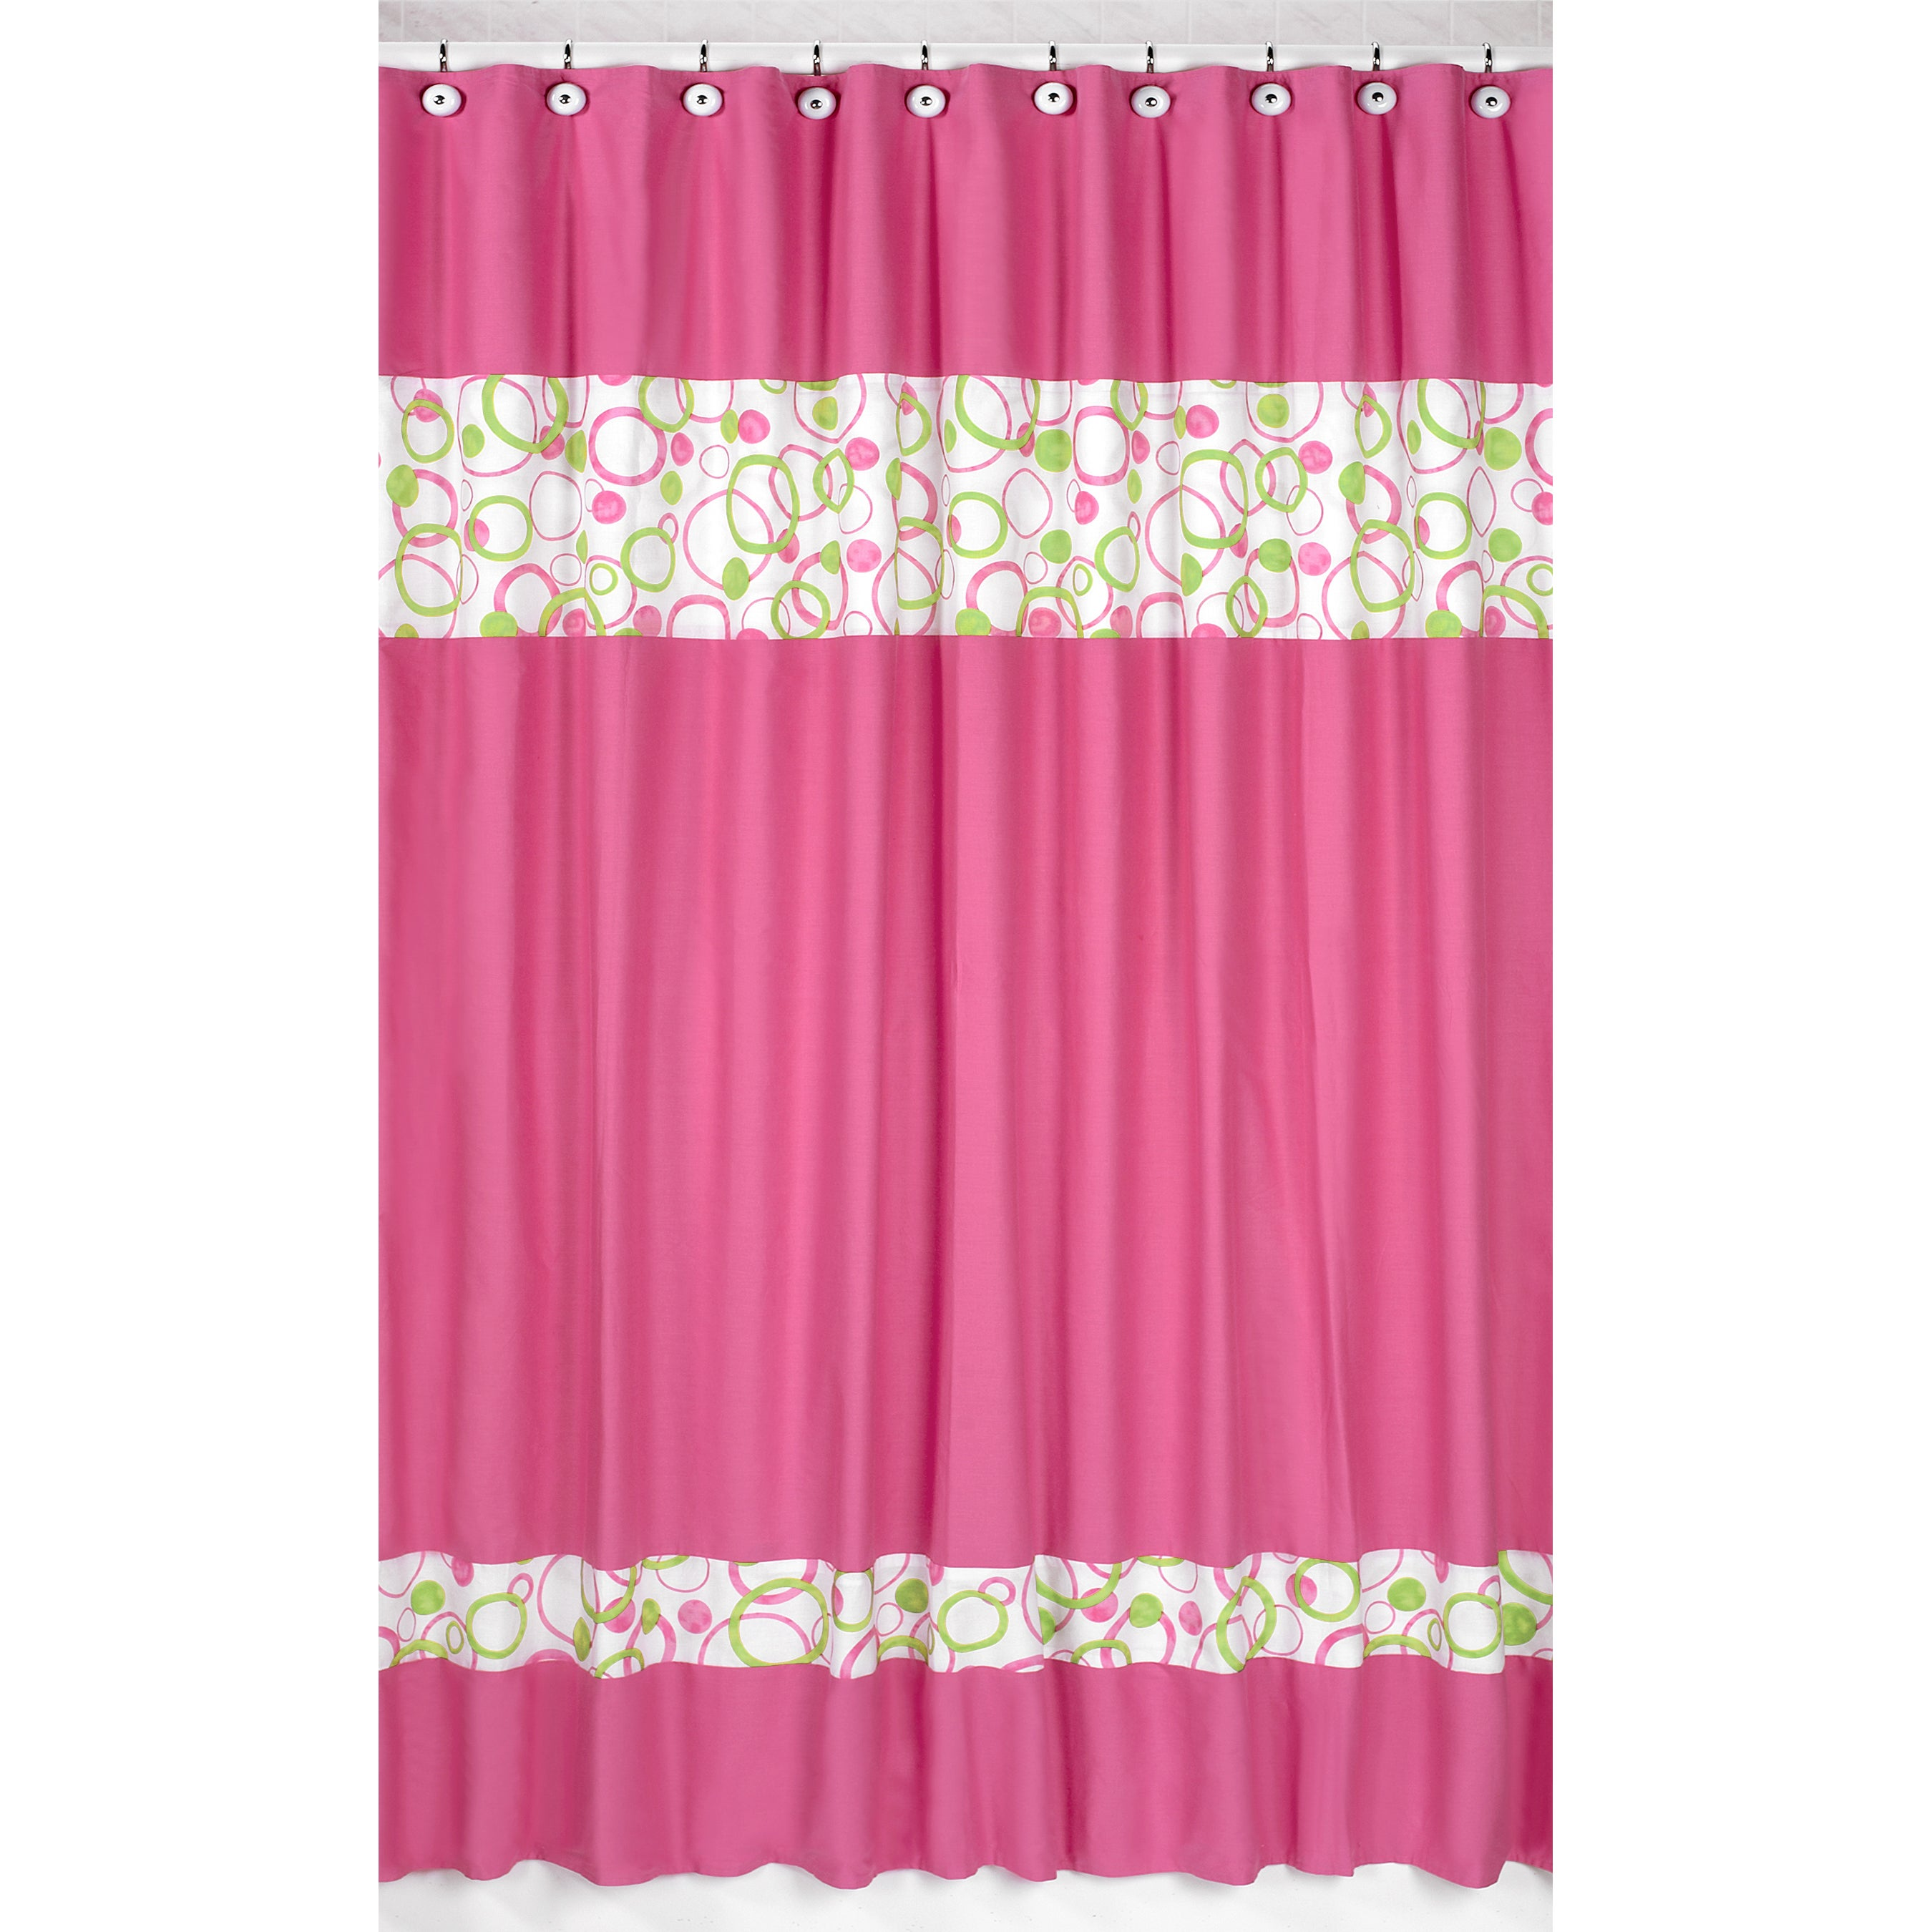 Shop Sweet Jojo Designs Circles Pink And Green Shower Curtain